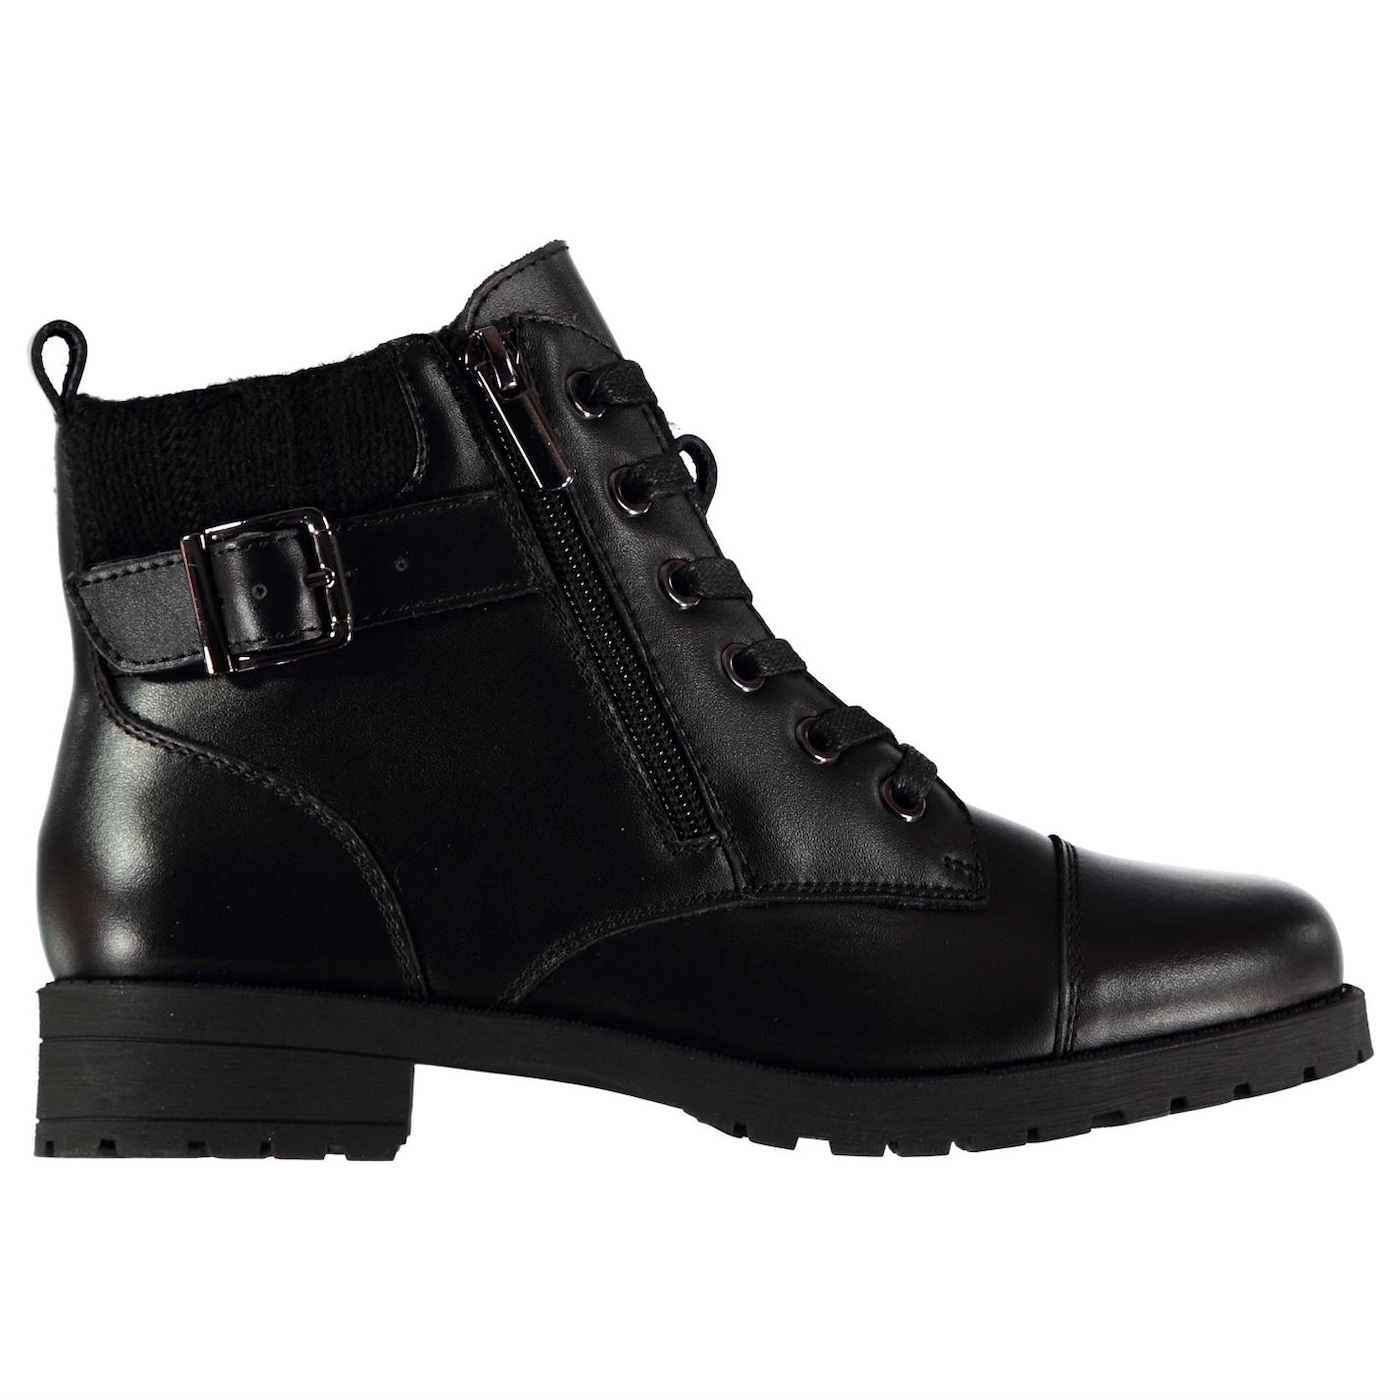 SoulCal Cabin Boots Ladies